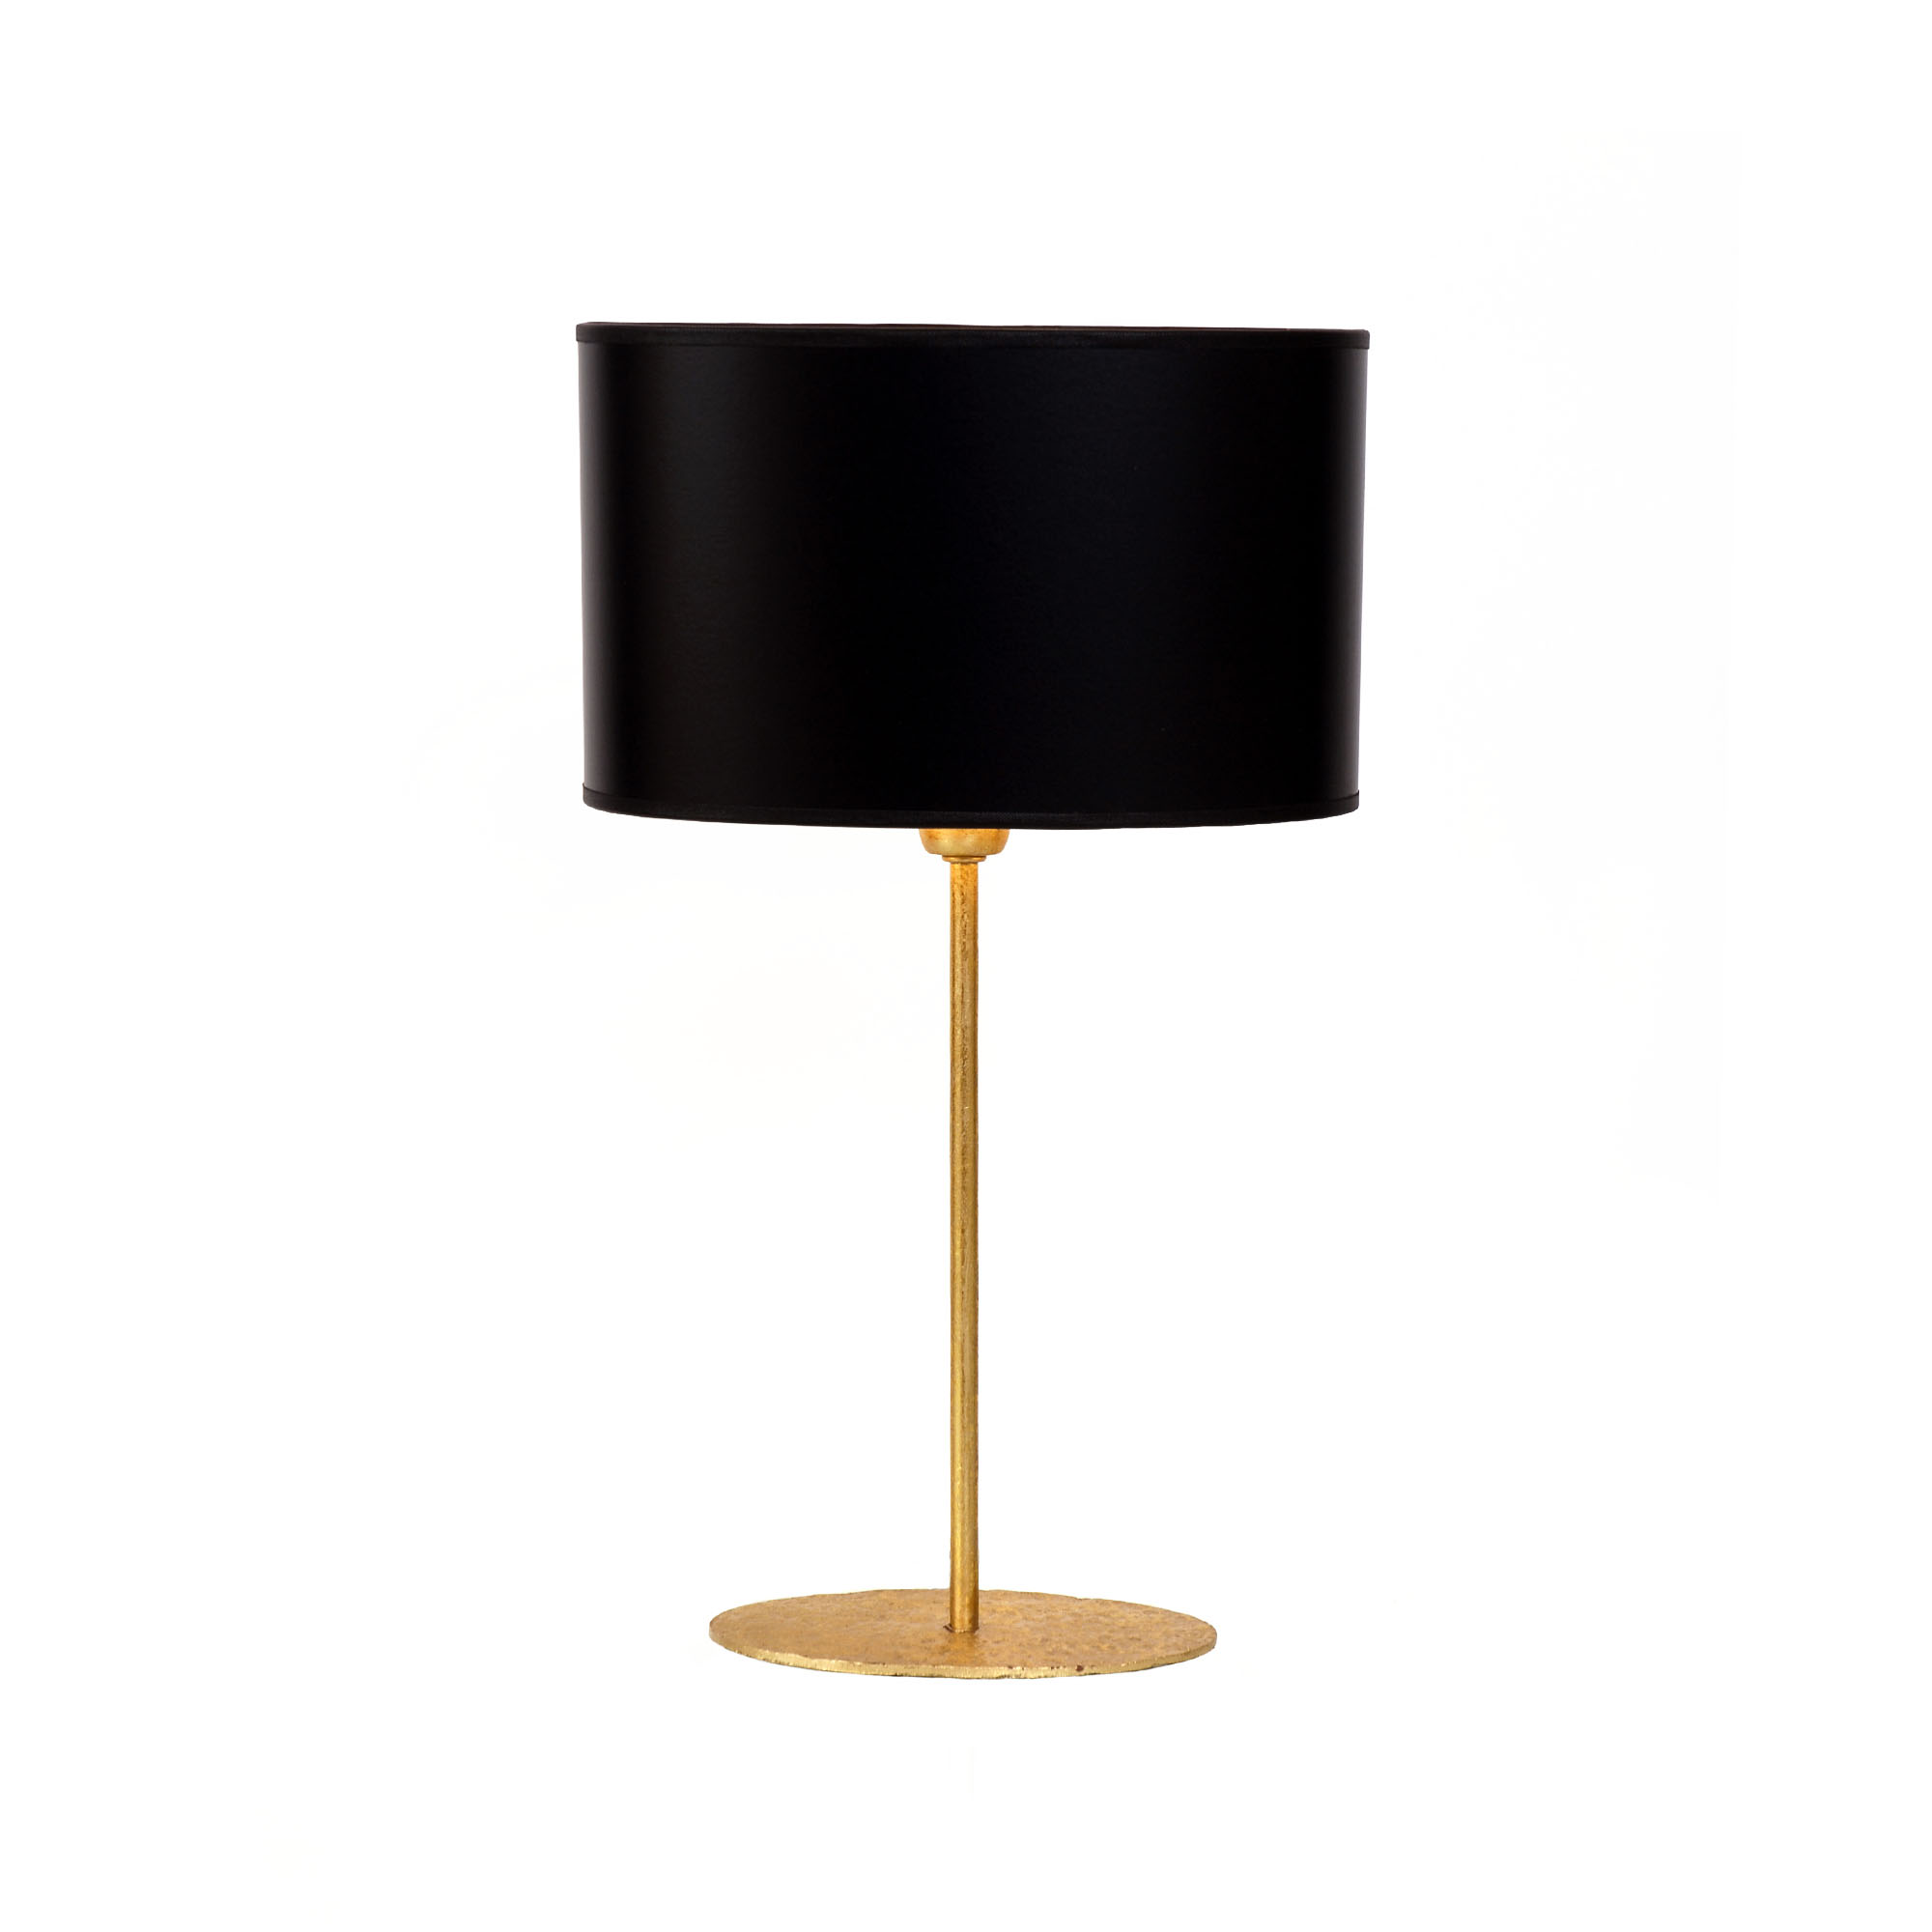 tischlampe schwarz gold industrielle tischlampe schwarz ivy 18 cm fabriklampe. Black Bedroom Furniture Sets. Home Design Ideas